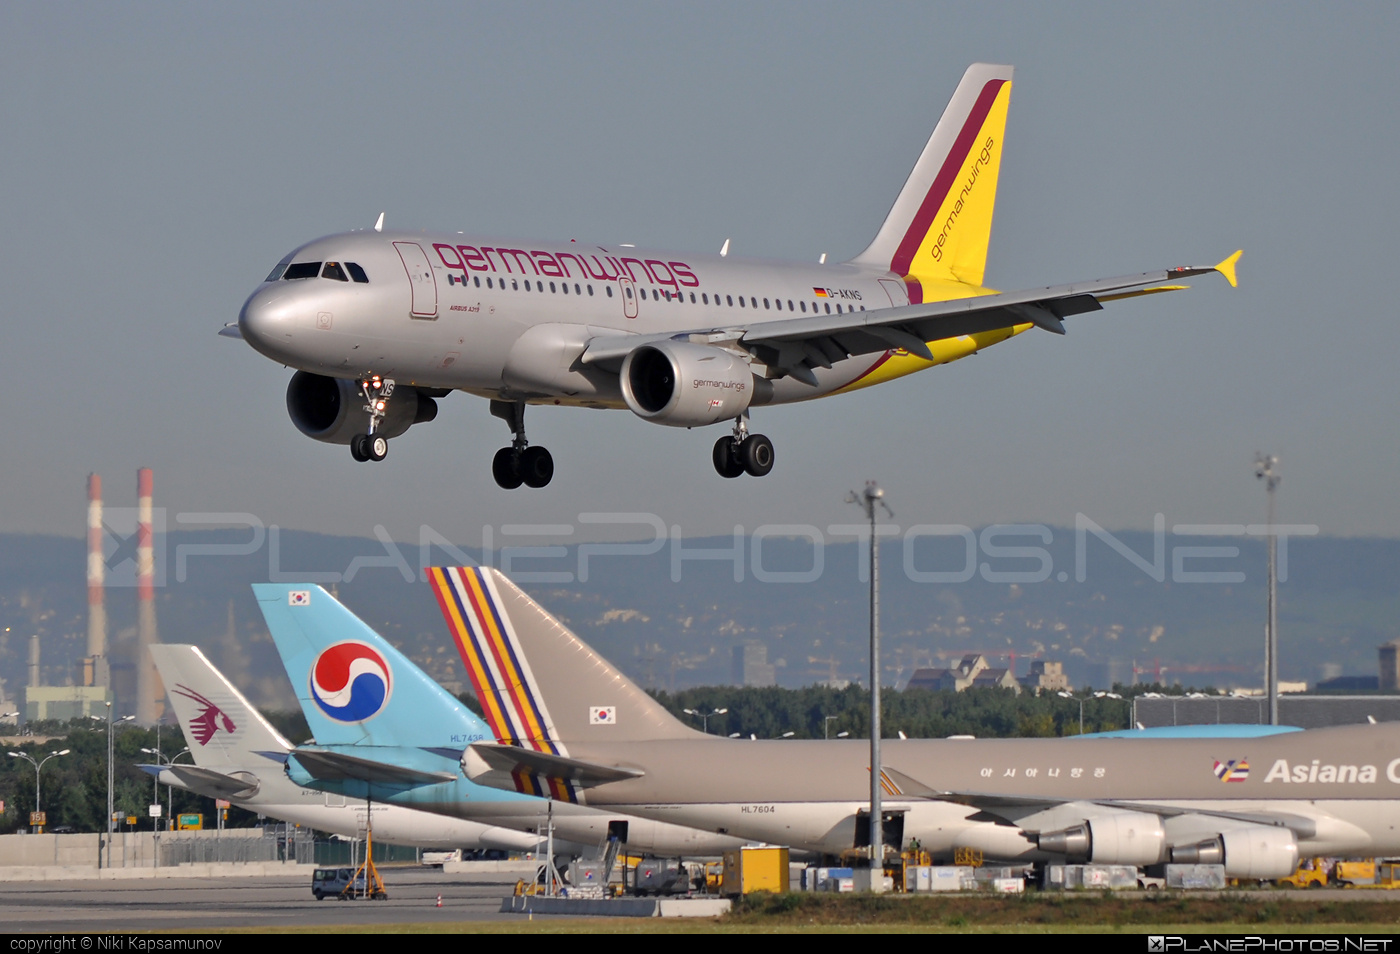 Airbus A319-112 - D-AKNS operated by Germanwings #a319 #a320family #airbus #airbus319